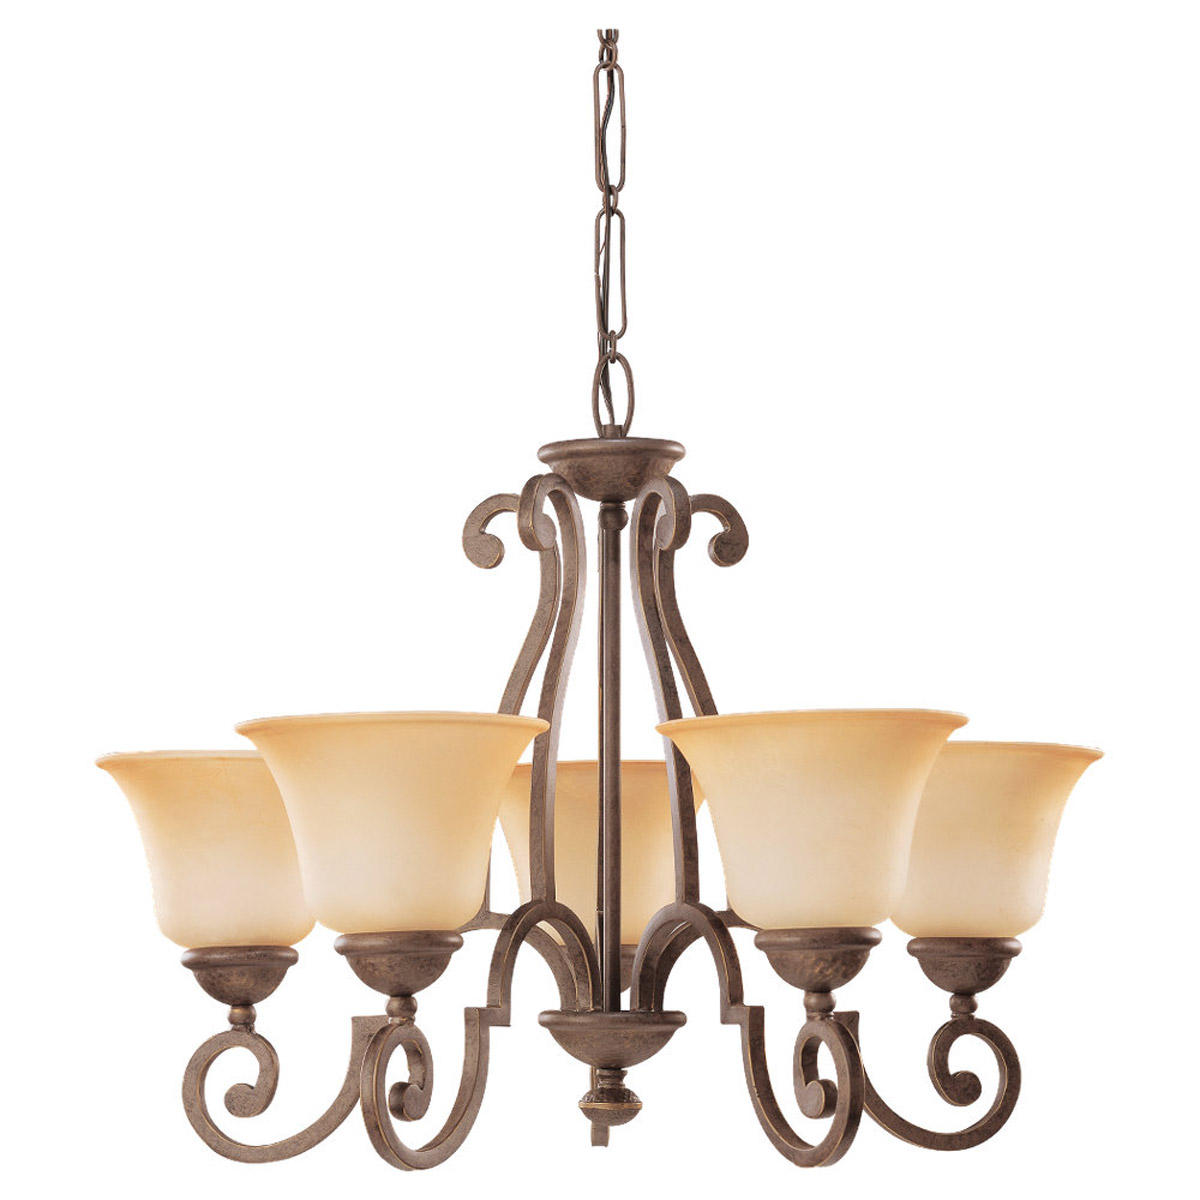 Sea Gull Lighting Brandywine 5 Light Chandelier in Antique Bronze 31431-71